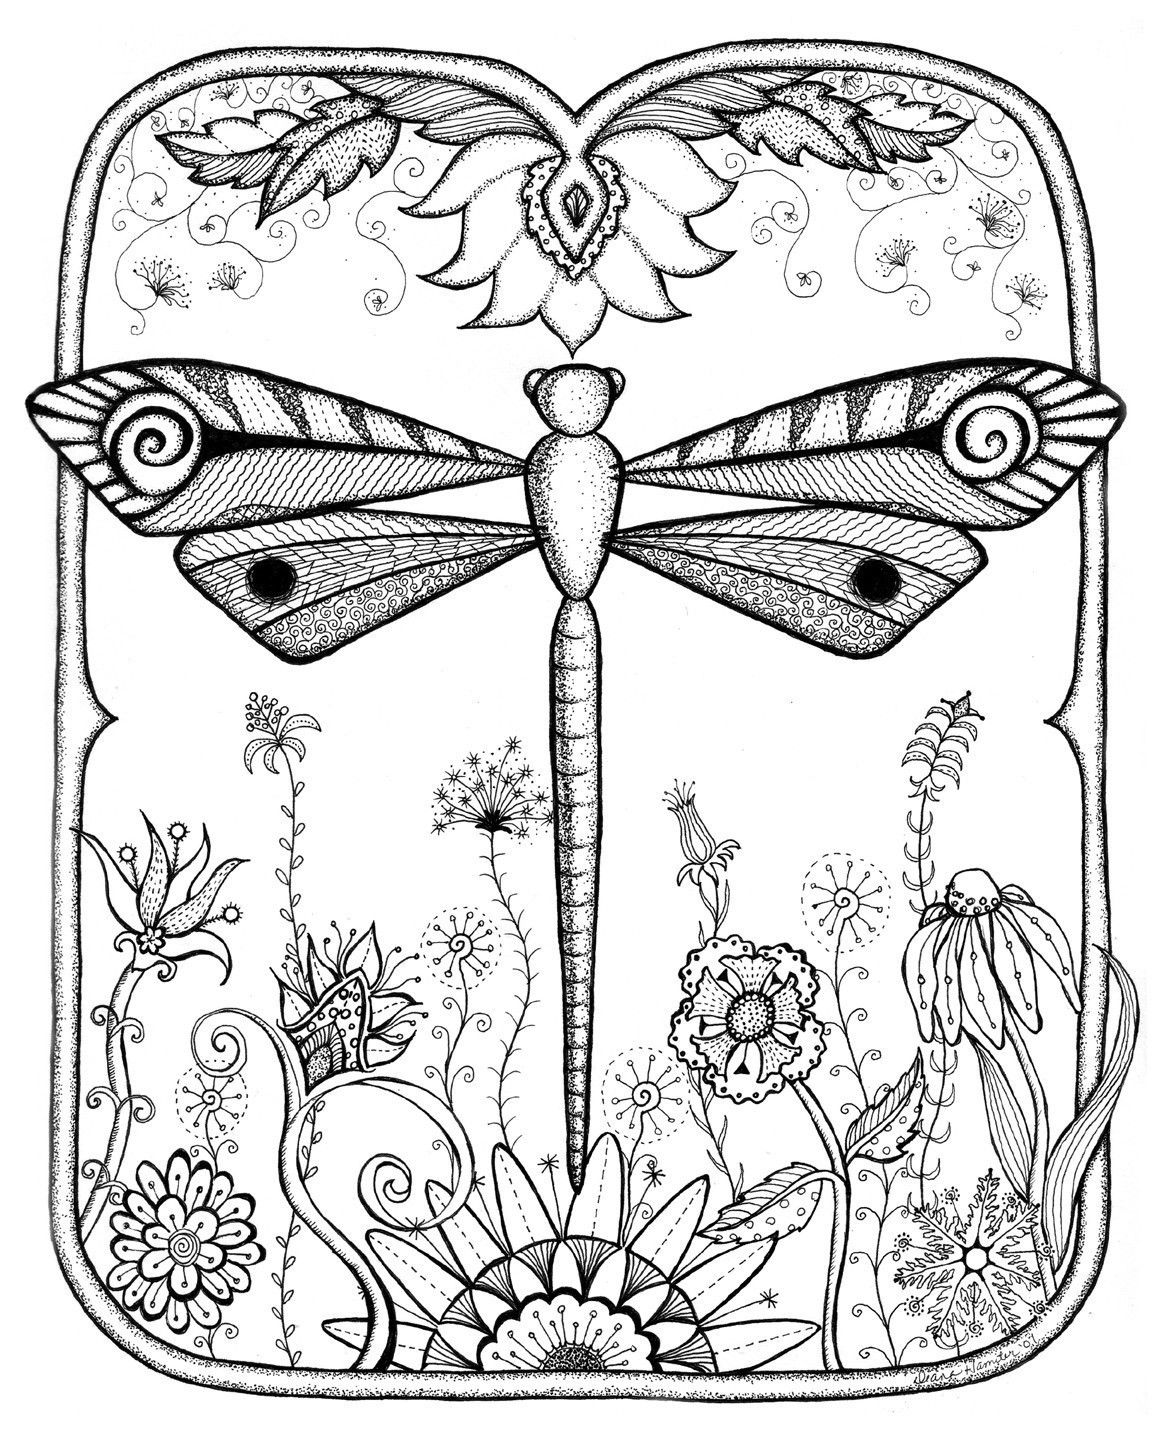 Dragonfly Garden Abstract Doodle Zentangle Zendoodle Paisley Coloring Pages Colouring Adult